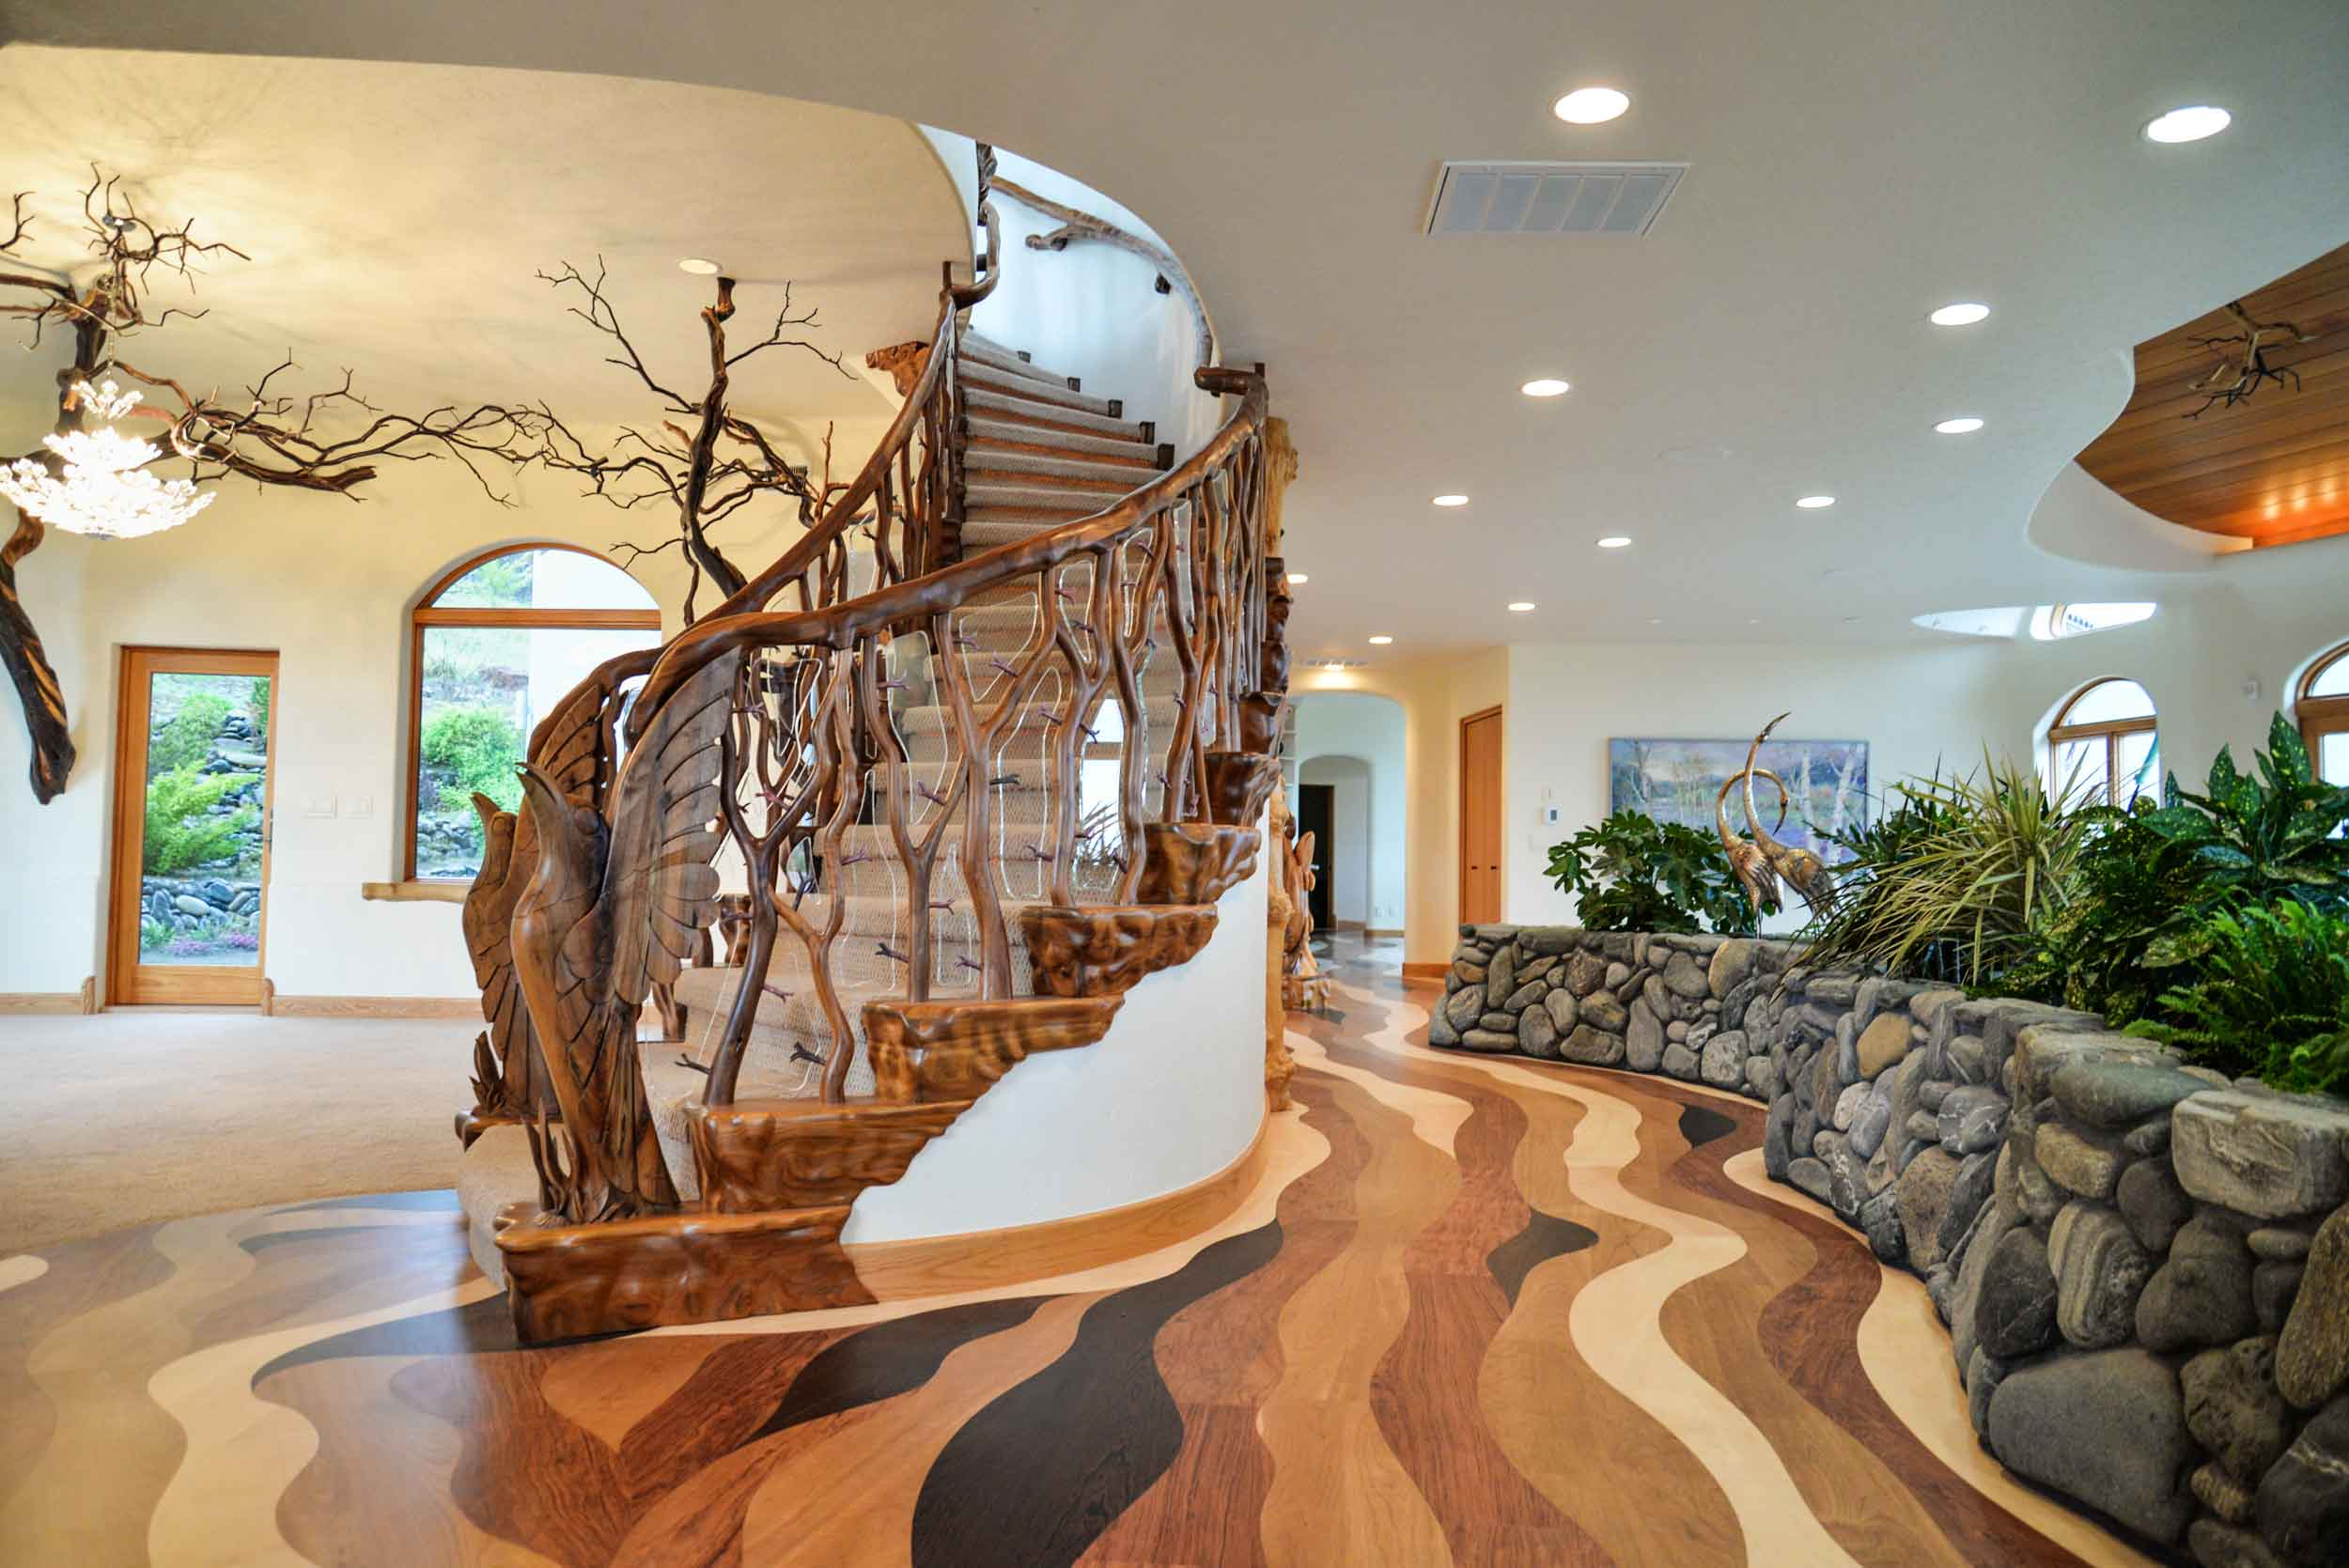 The foyer is one of a kind. The granite floor is reminiscent of the sandy shore at the edge of a river. Above, the ceiling is tiled in blue stone to resemble the sky.